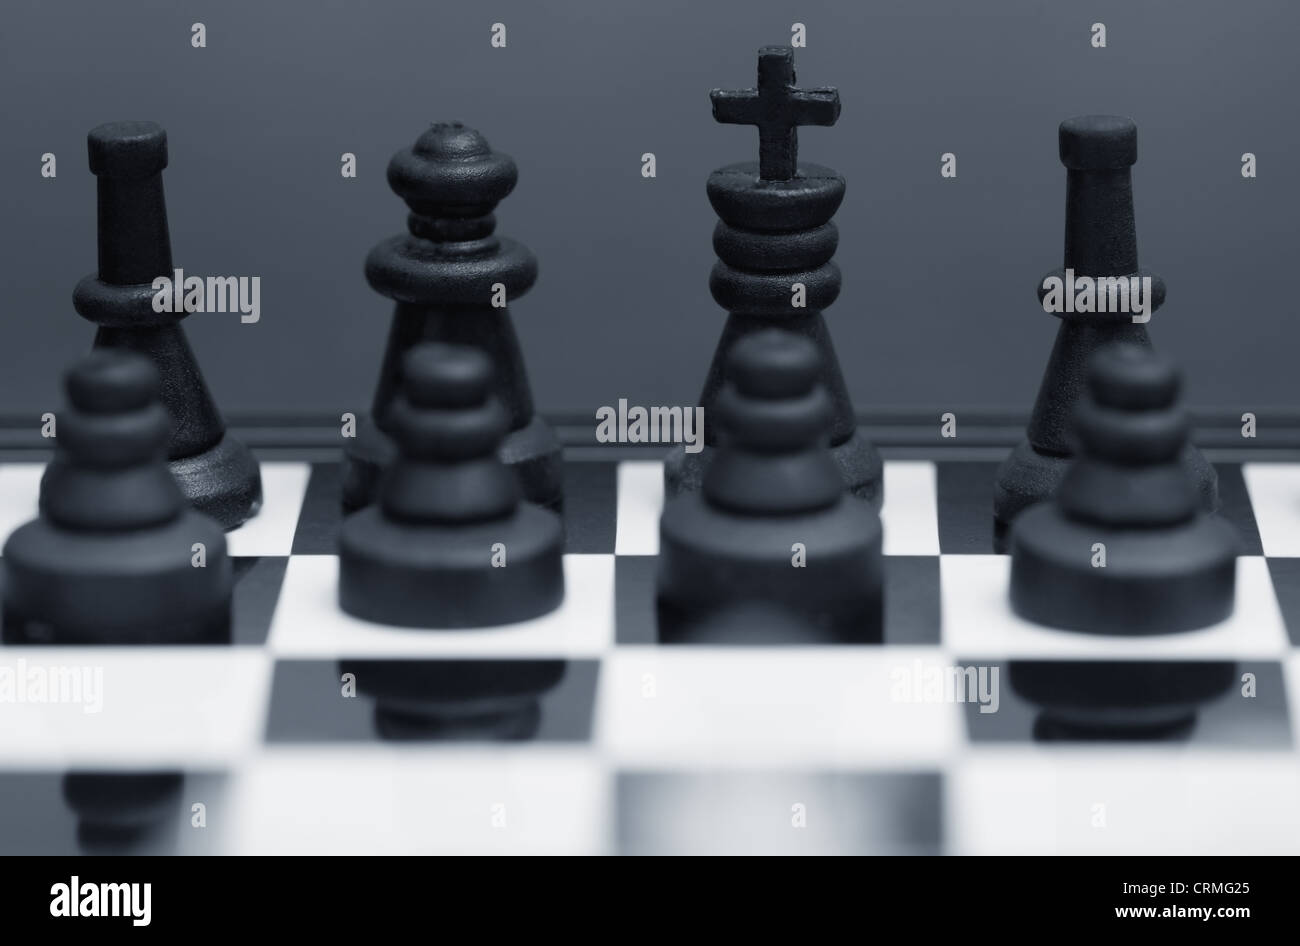 Close-up photo of the chessmen on a chessboard - Stock Image